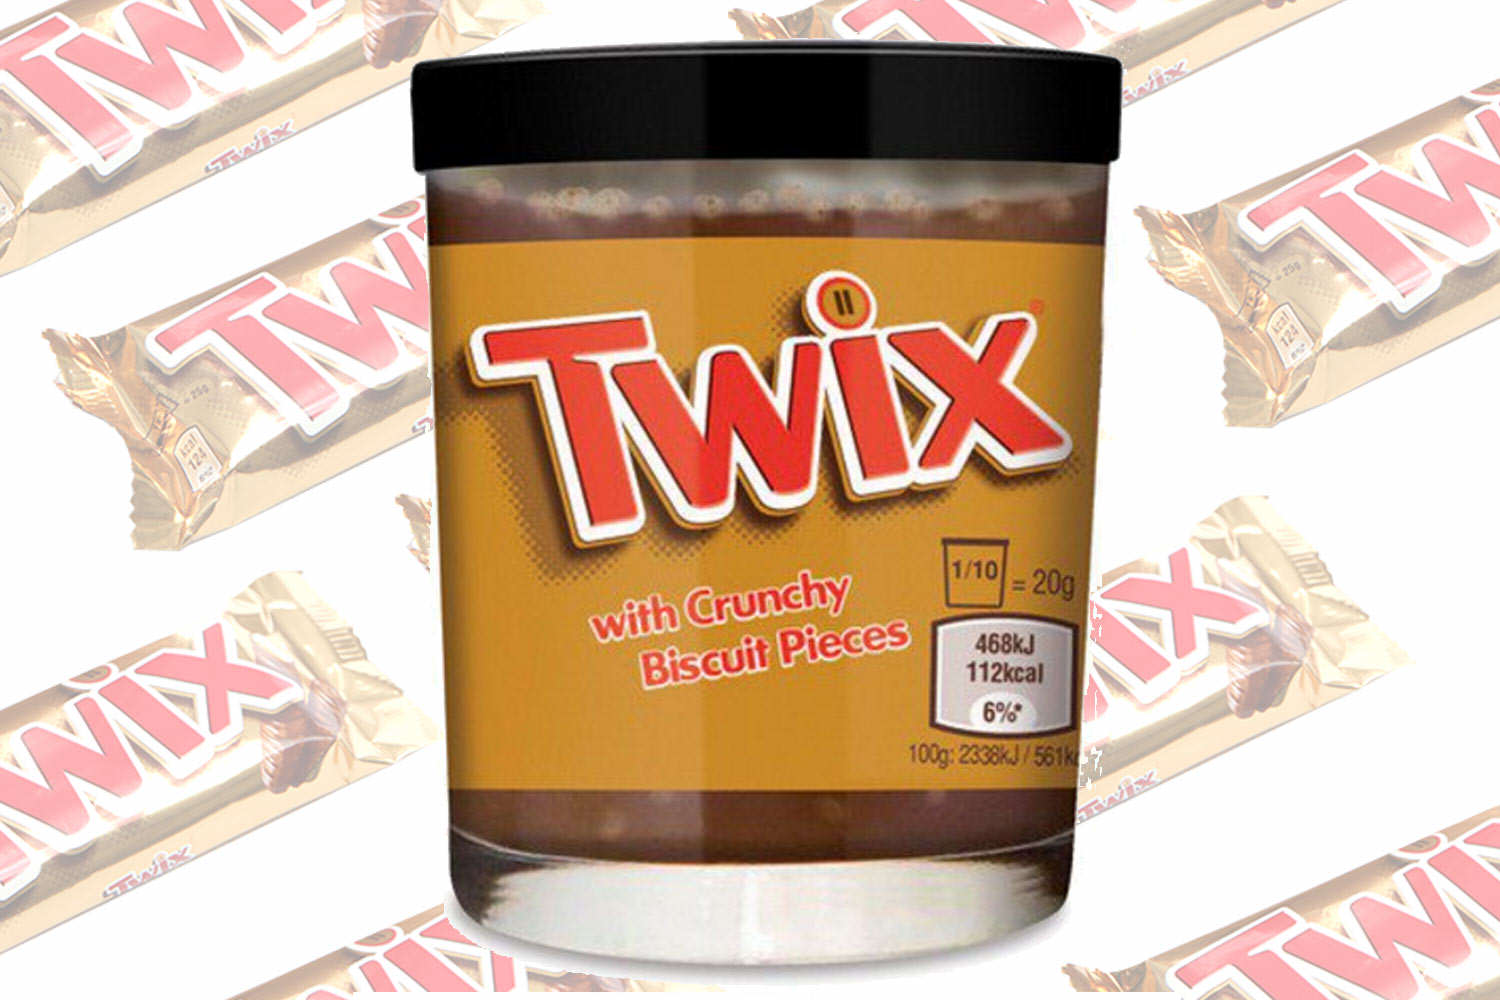 spread2 Twix Chocolate Spread Has Landed And It Sounds Awesome